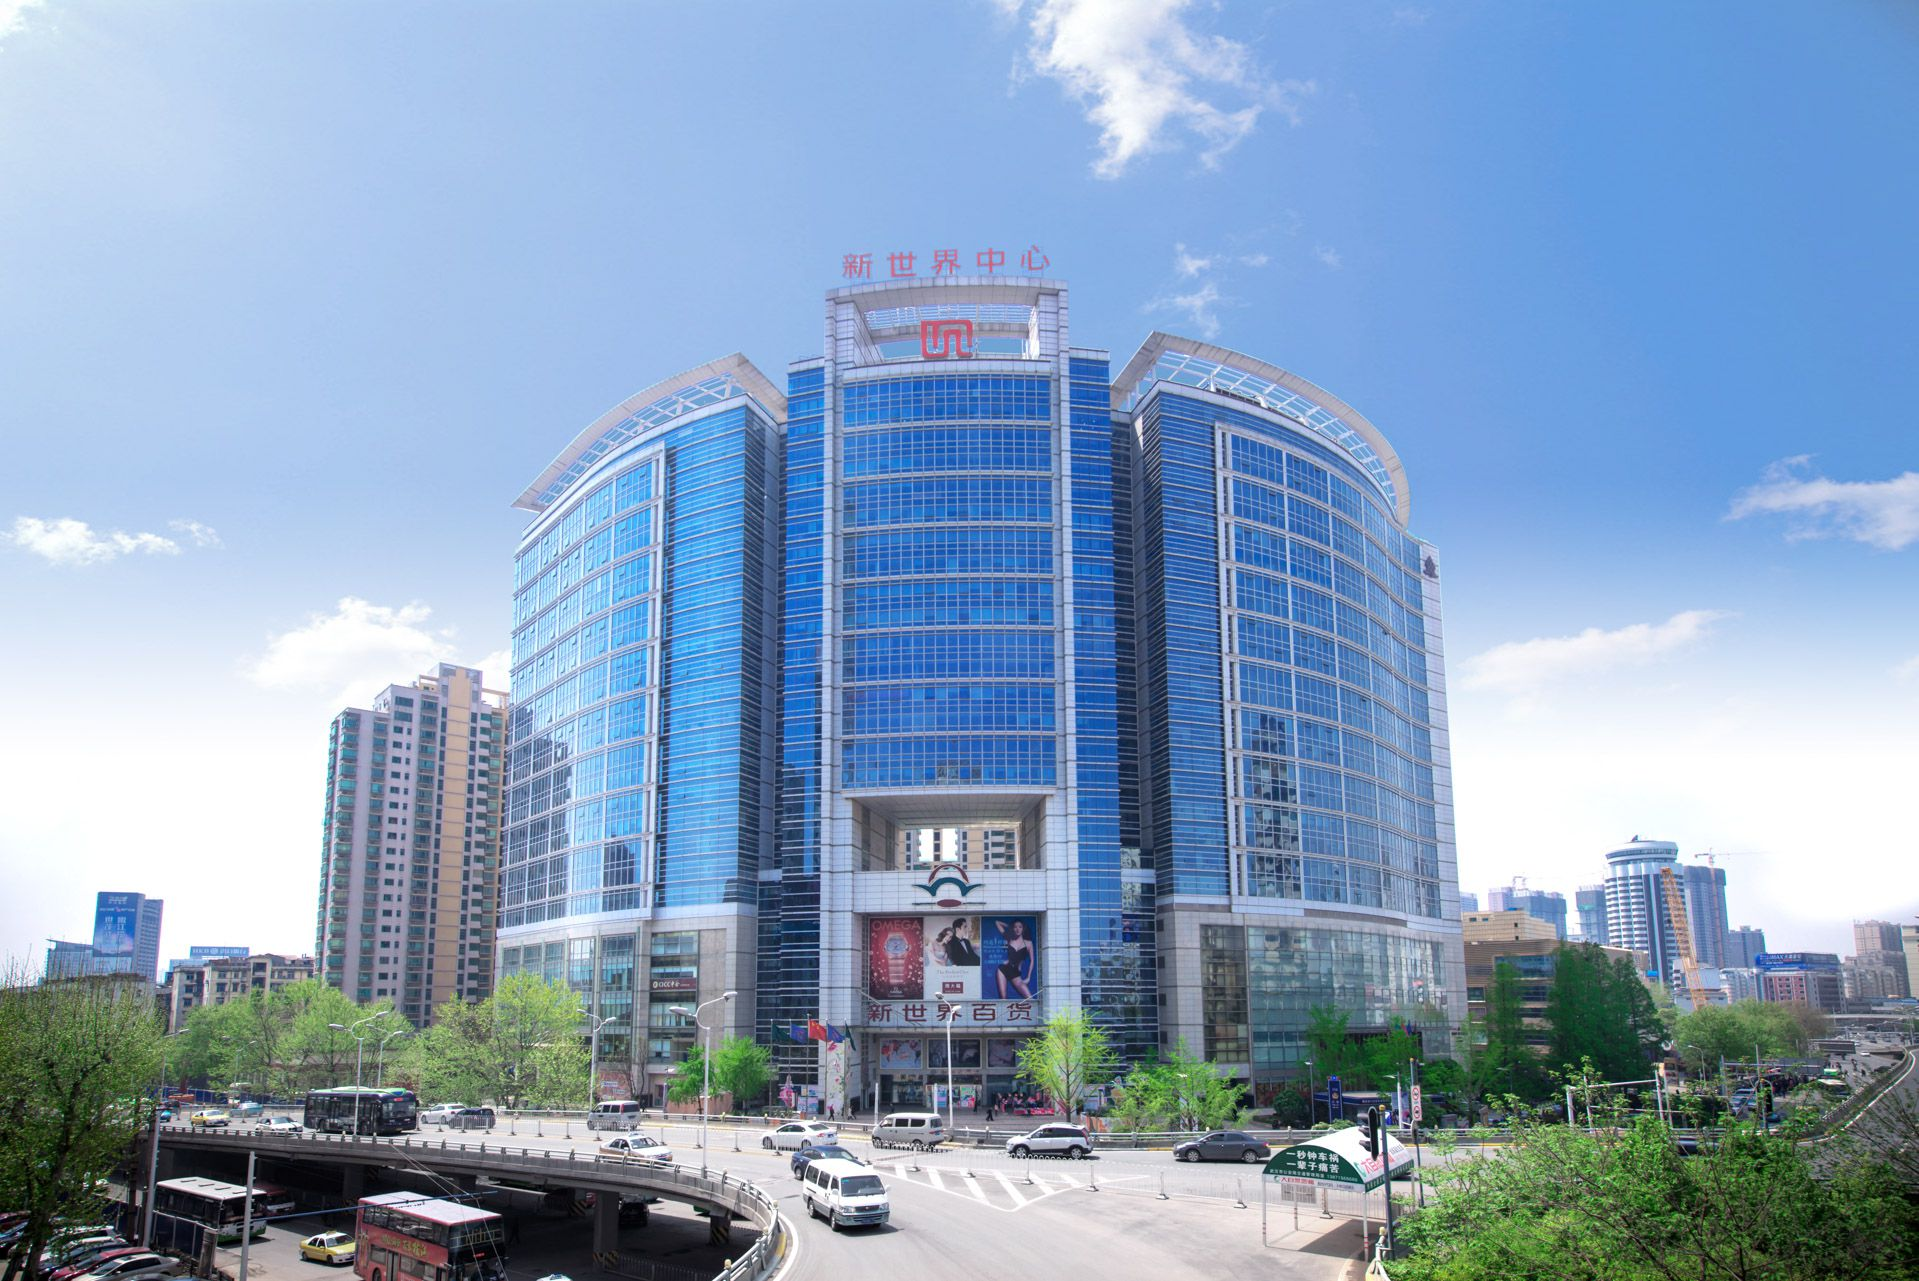 Wuhan New World Centre